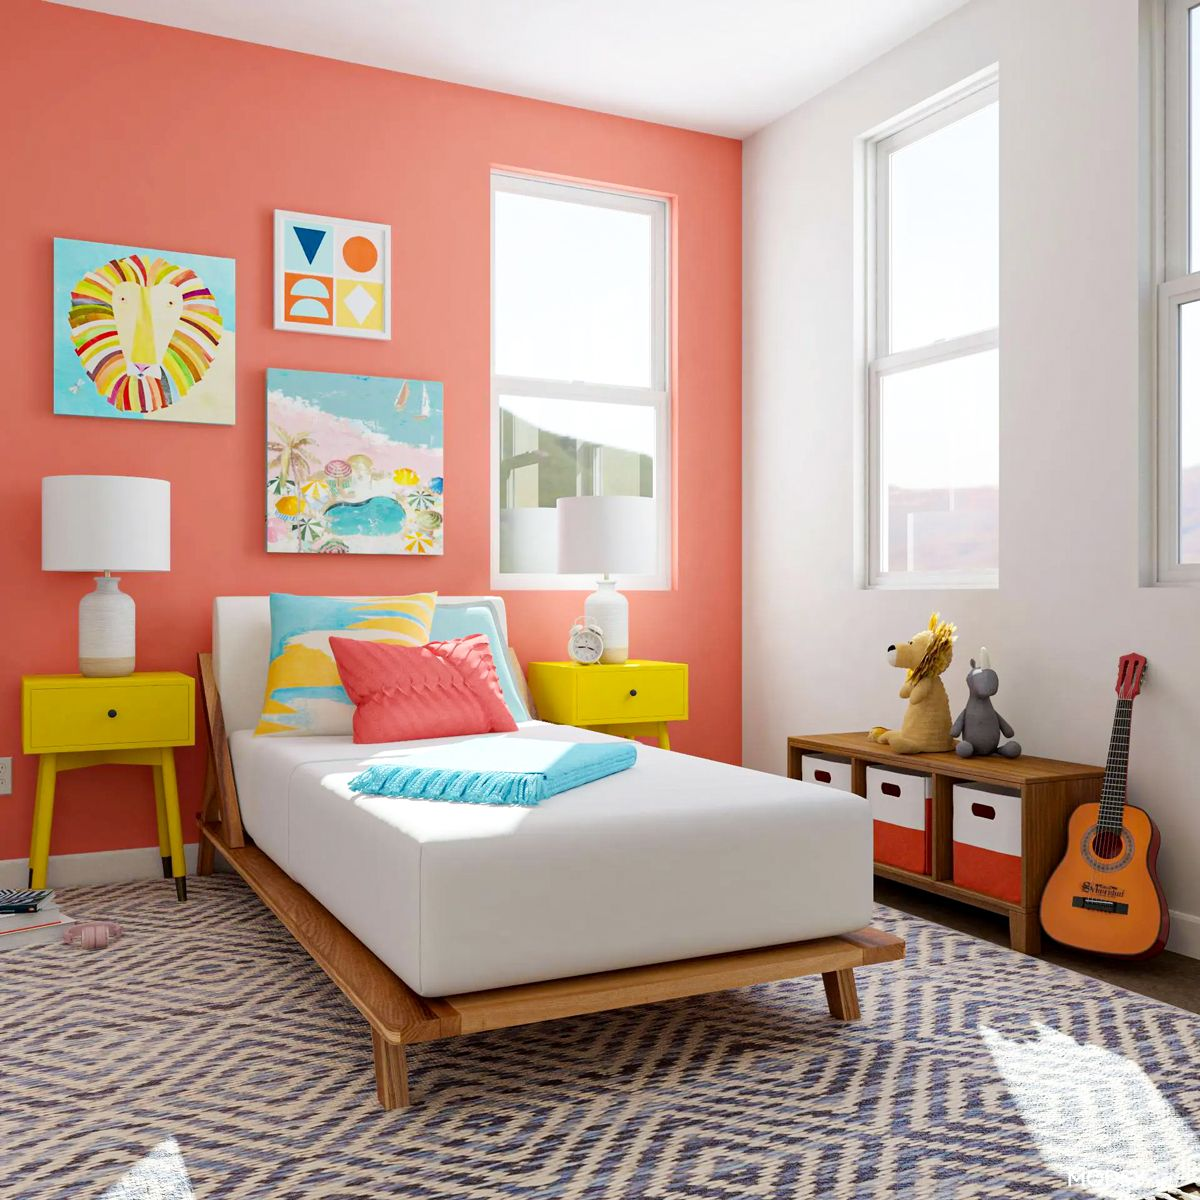 accent wall ideas 9 out of the box accent wall designs on accent wall ideas id=98333